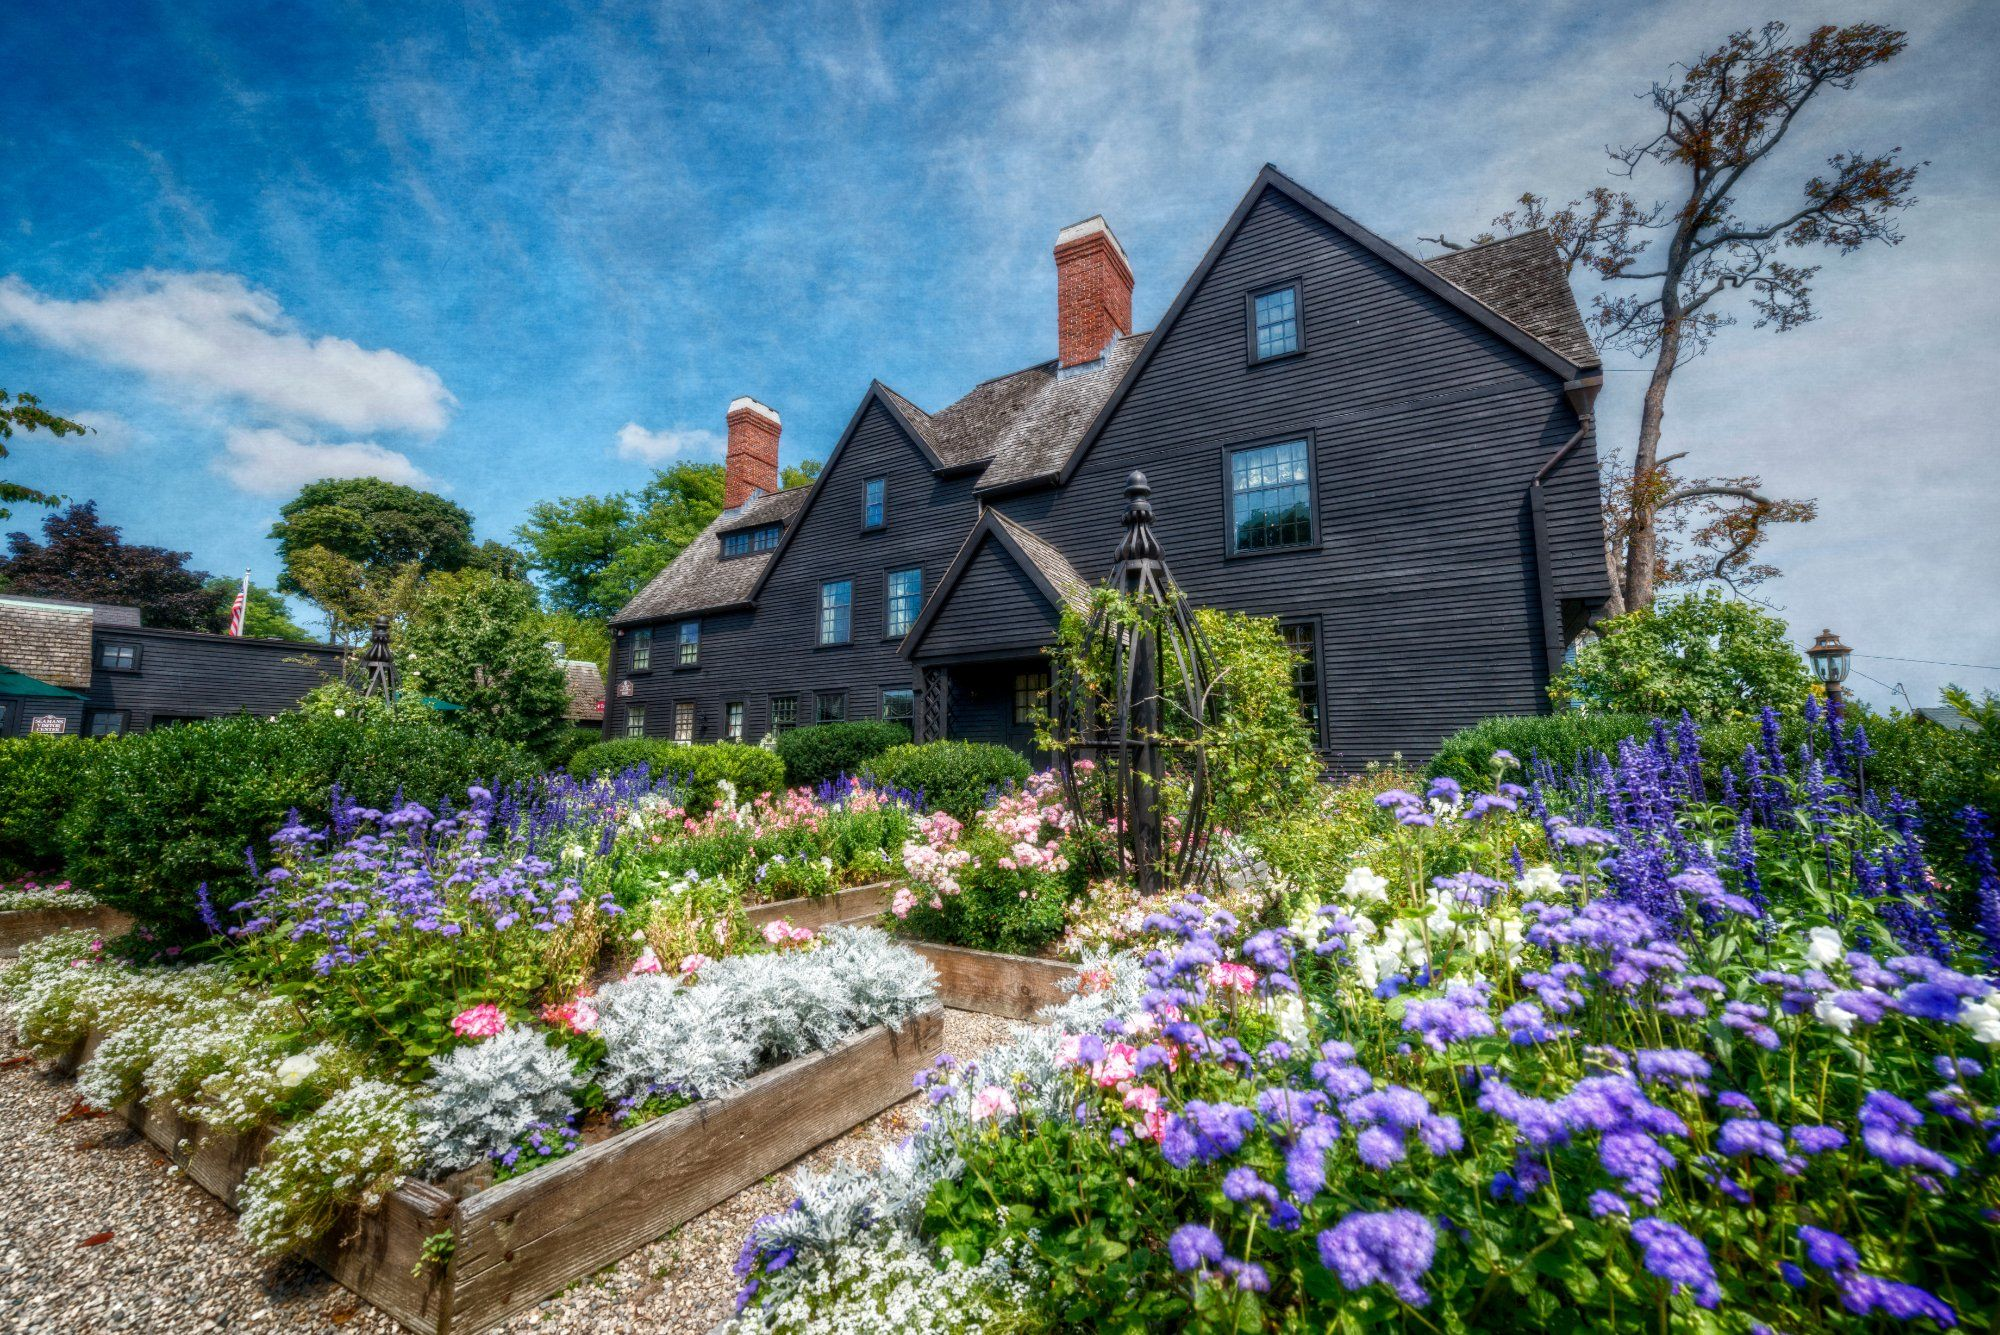 Book Your Tickets Online For The House Of The Seven Gables Salem See 2 069 Review Waterfront Wedding Venue House Of Seven Gables Massachusetts Wedding Venues